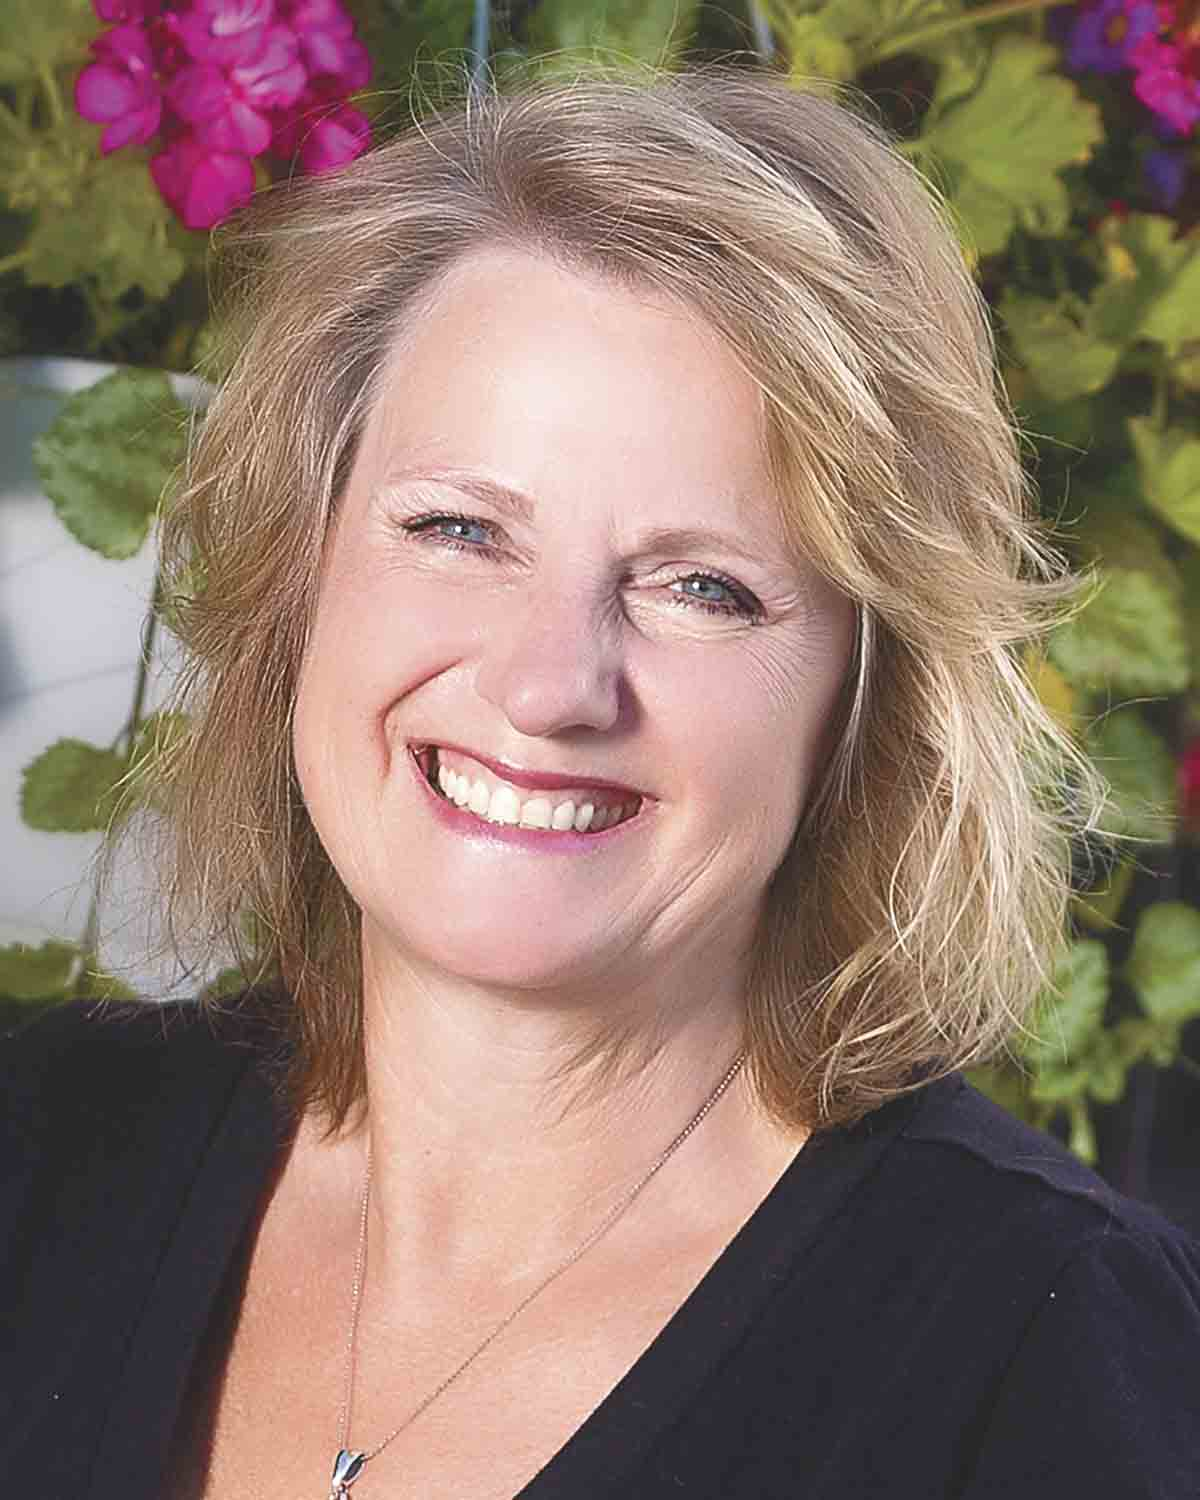 2016 Citizen of the year: Gail HackmanGail Hackman Citizen of the YearBy Chris Debackcdeback@thefayettecountyunion.comVolunteering is the selfless act of a person giving his or her time to a cause or event without the expectation of pay. It can be...